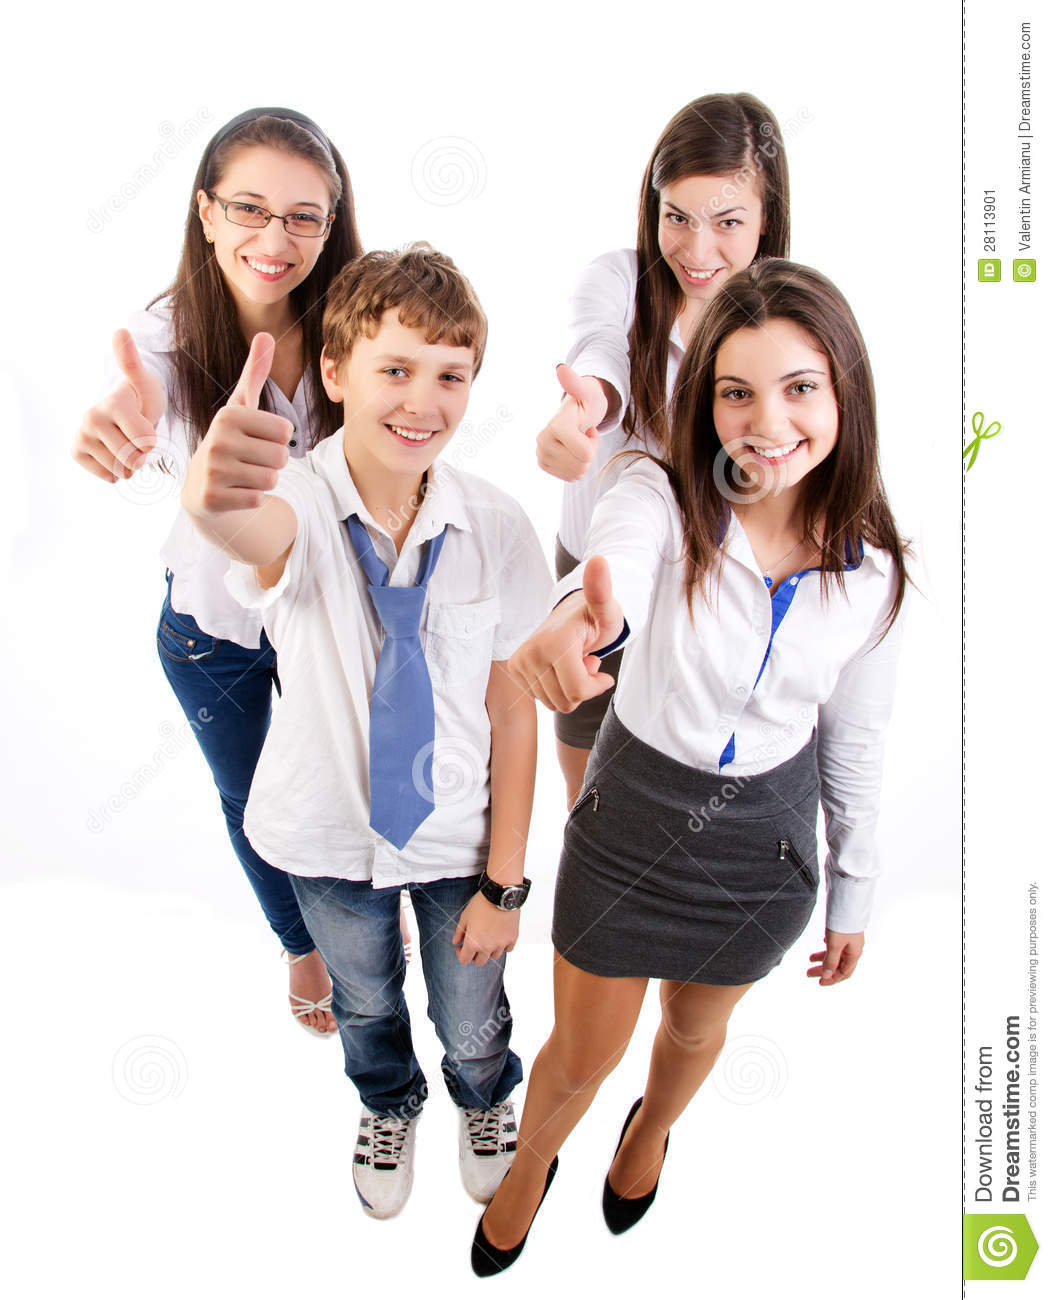 Schools Education6 25 18students: Group Of Happy Students Stock Image. Image Of Student